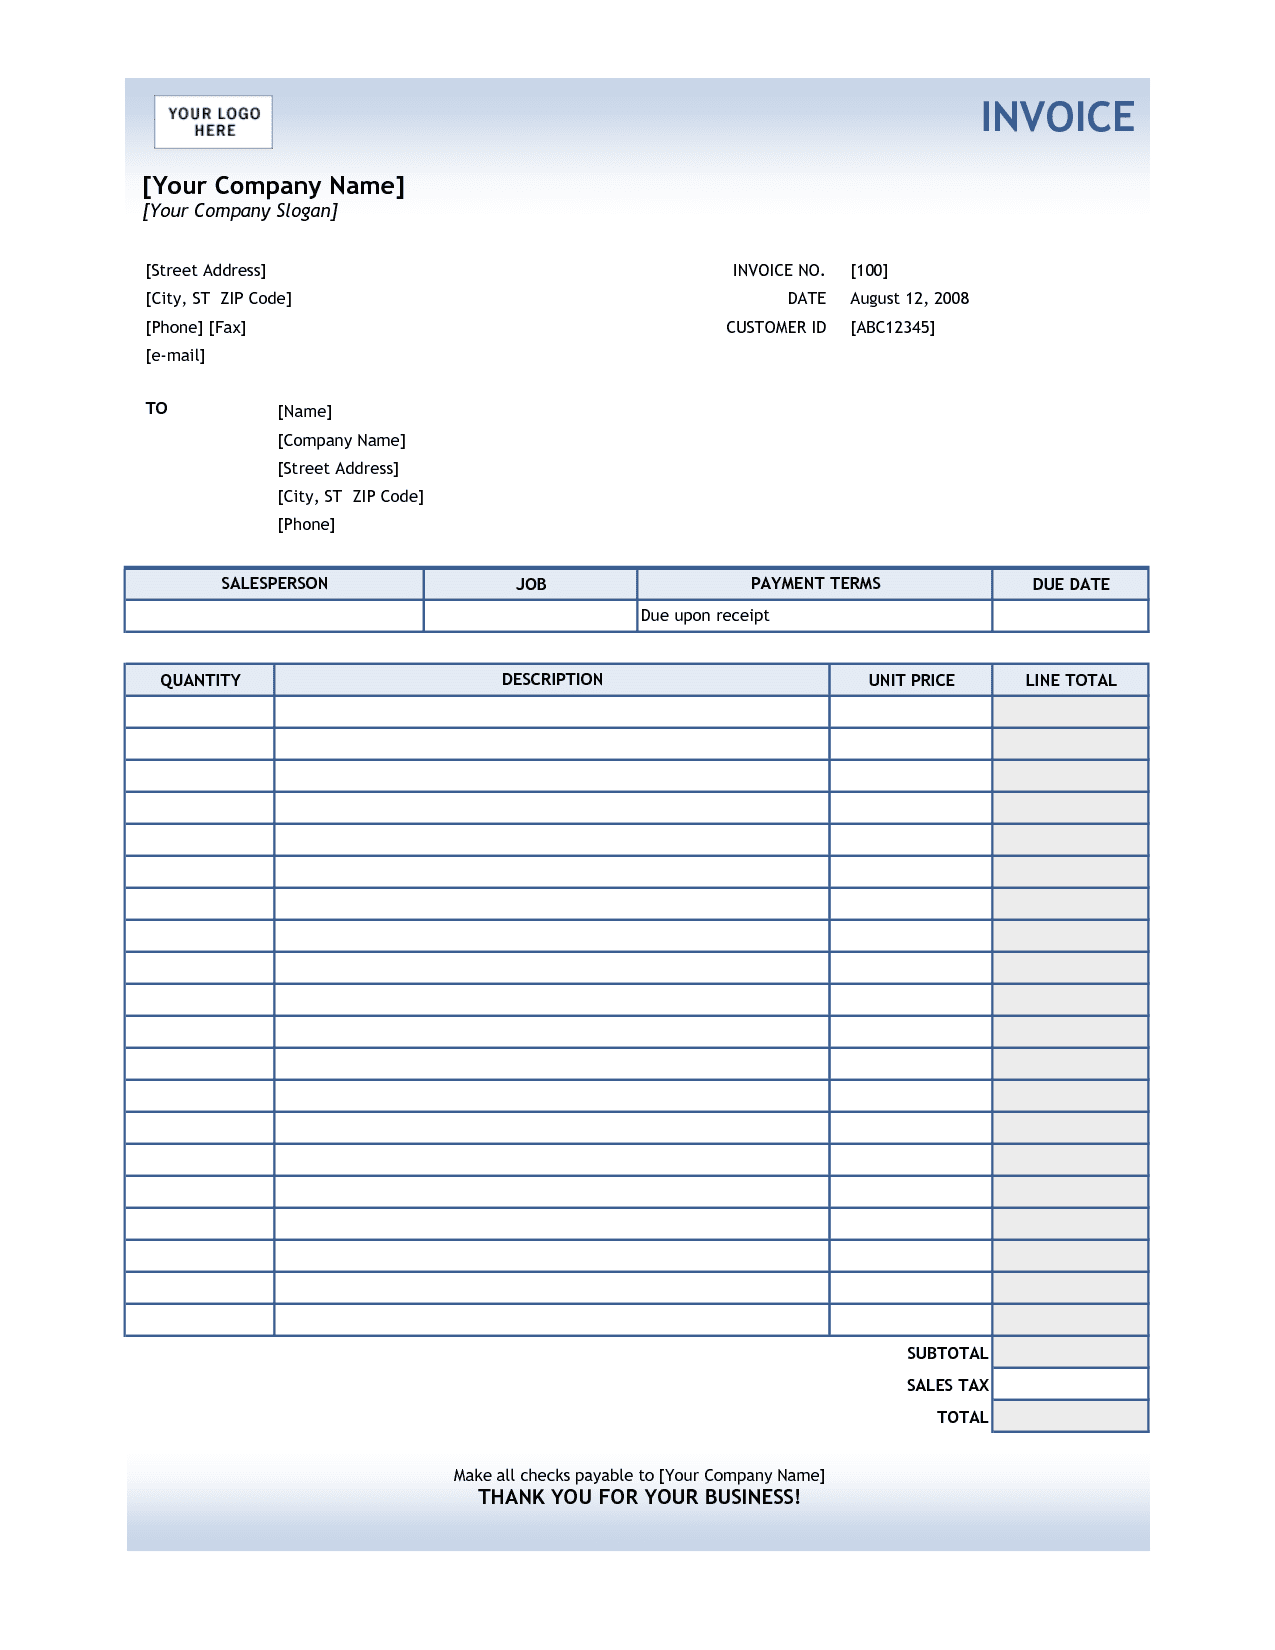 Invoice Summary Template Invoice Excel Template Spreadsheet Templates for Busines Spreadsheet Templates for Busines Billing Invoice Template Excel